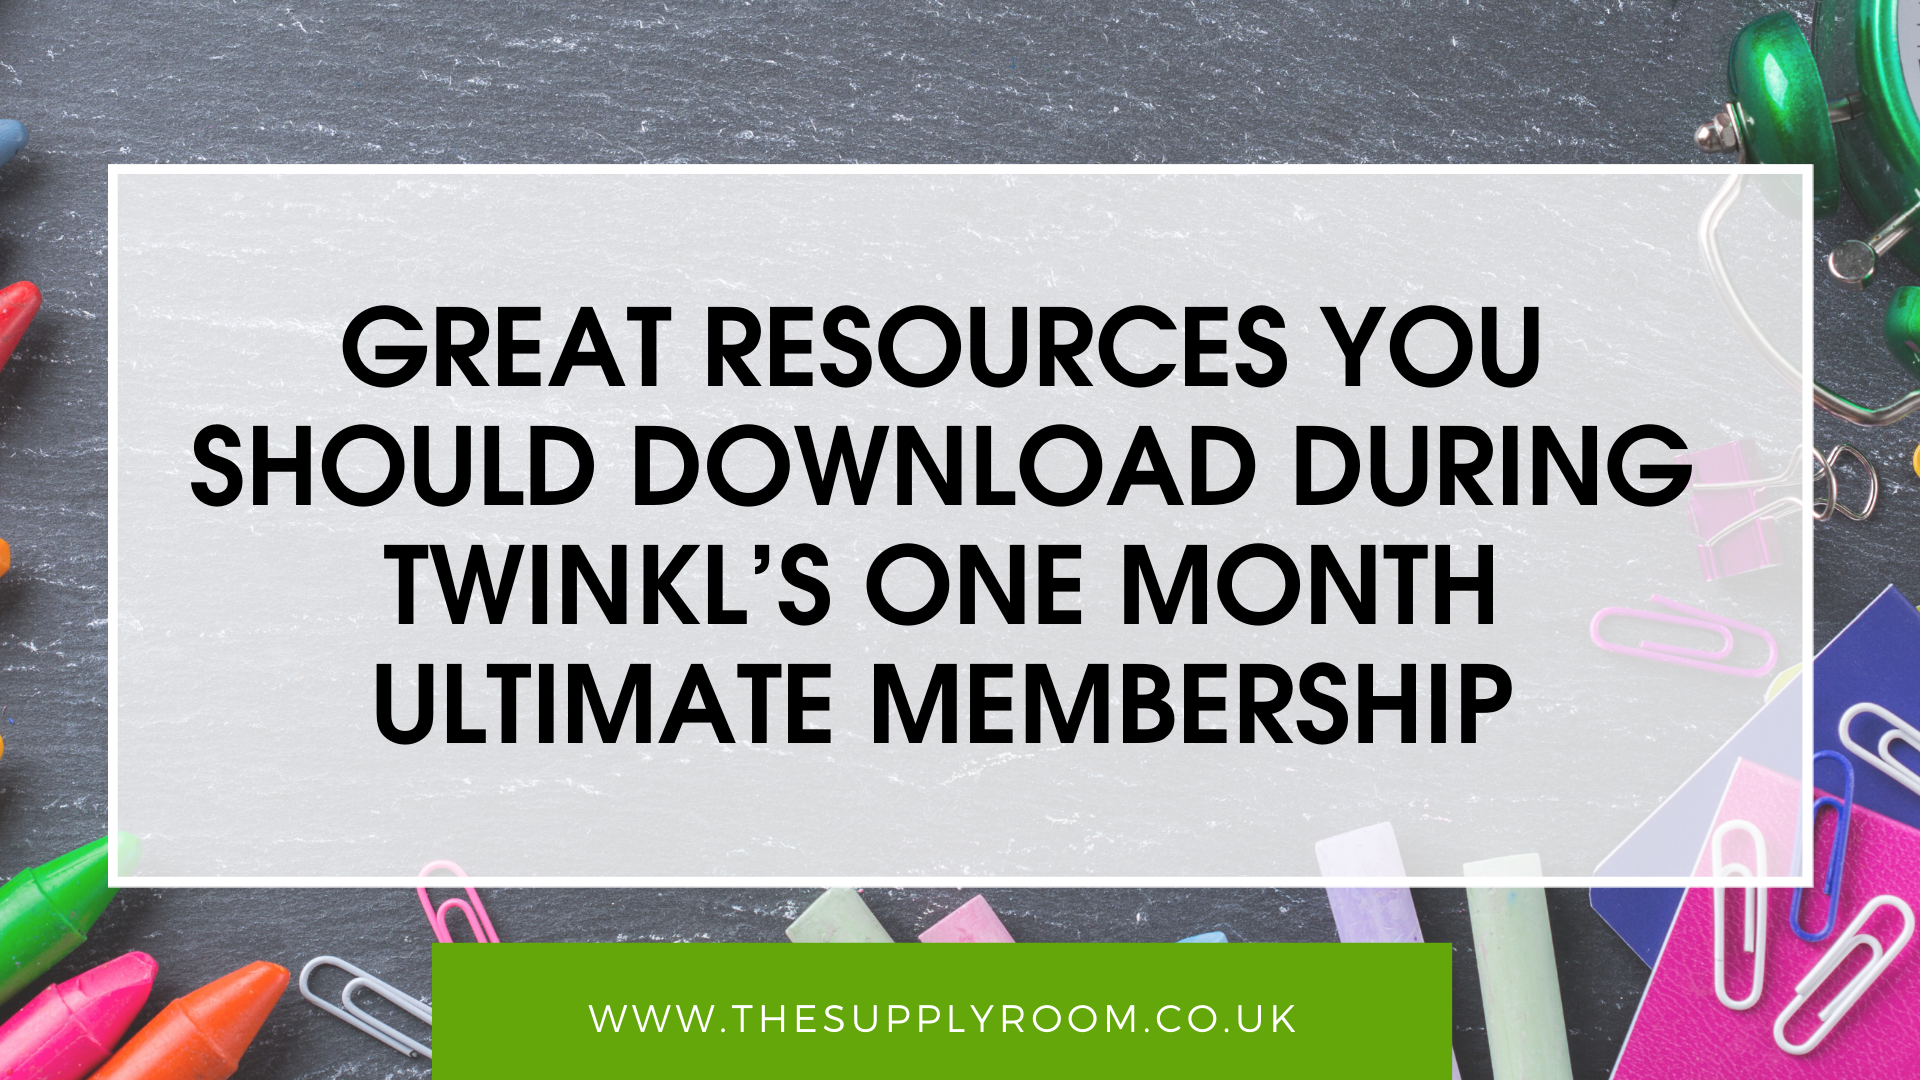 Great Resources you should download during Twinkl's One Month Ultimate Membership